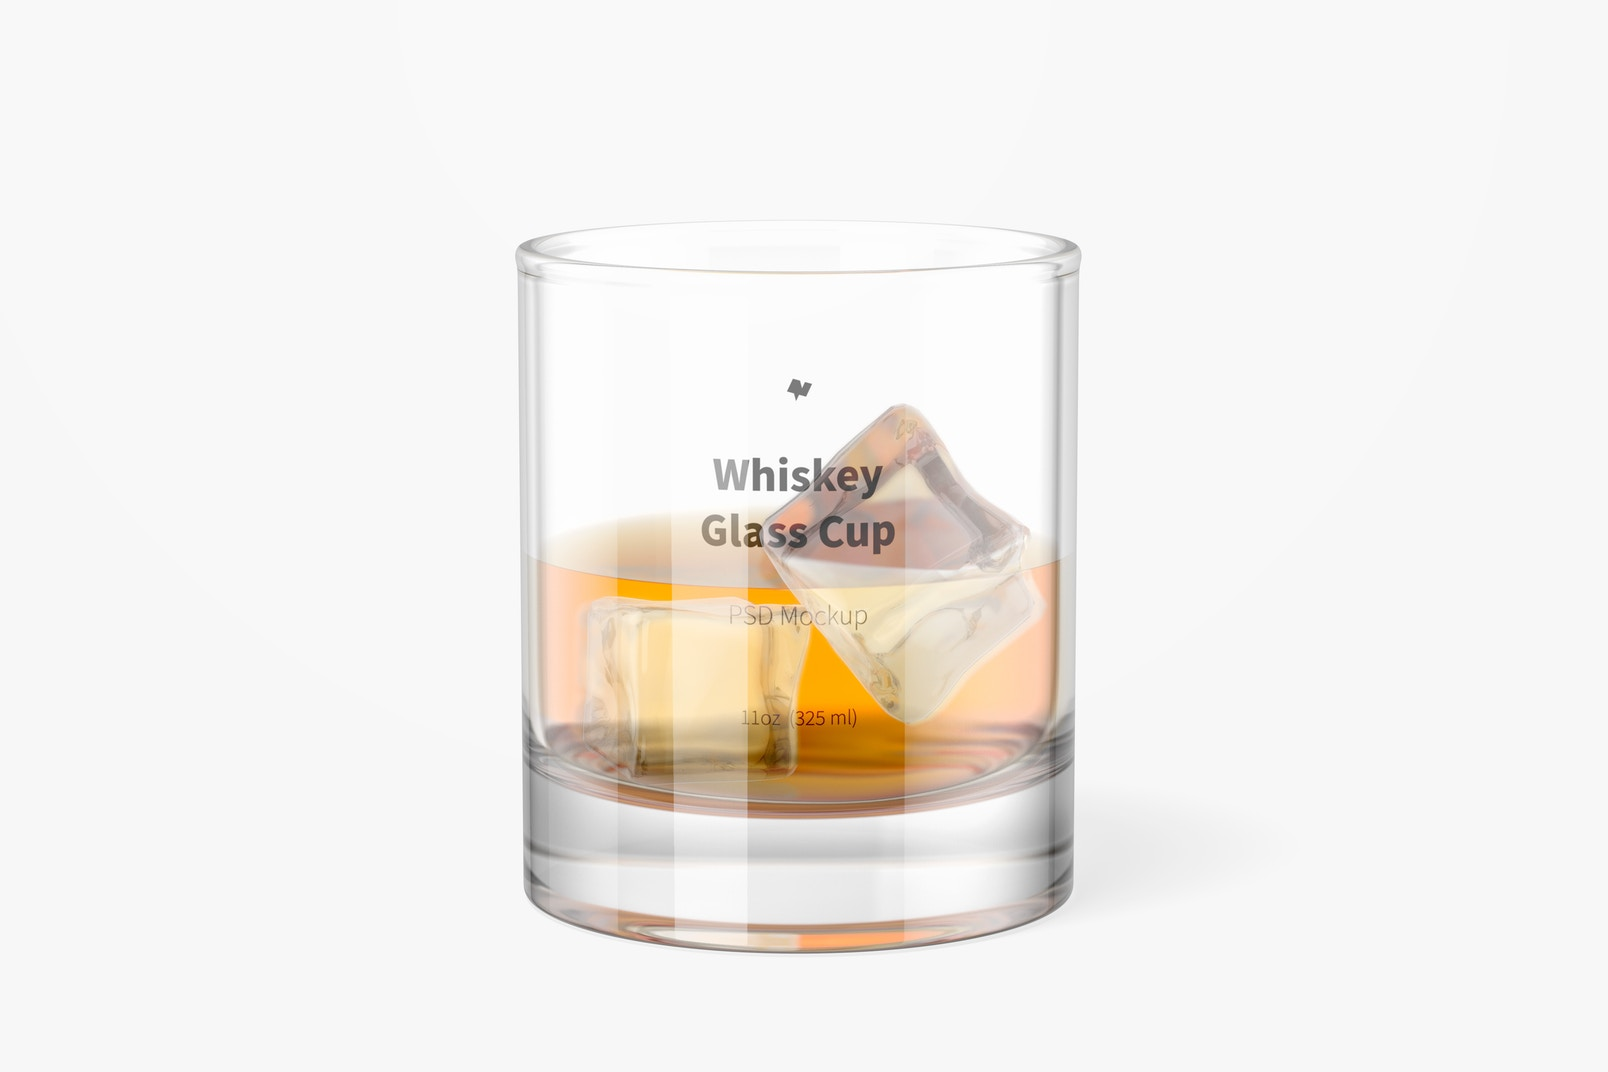 11 oz Whiskey Glass Cup Mockup, Front View